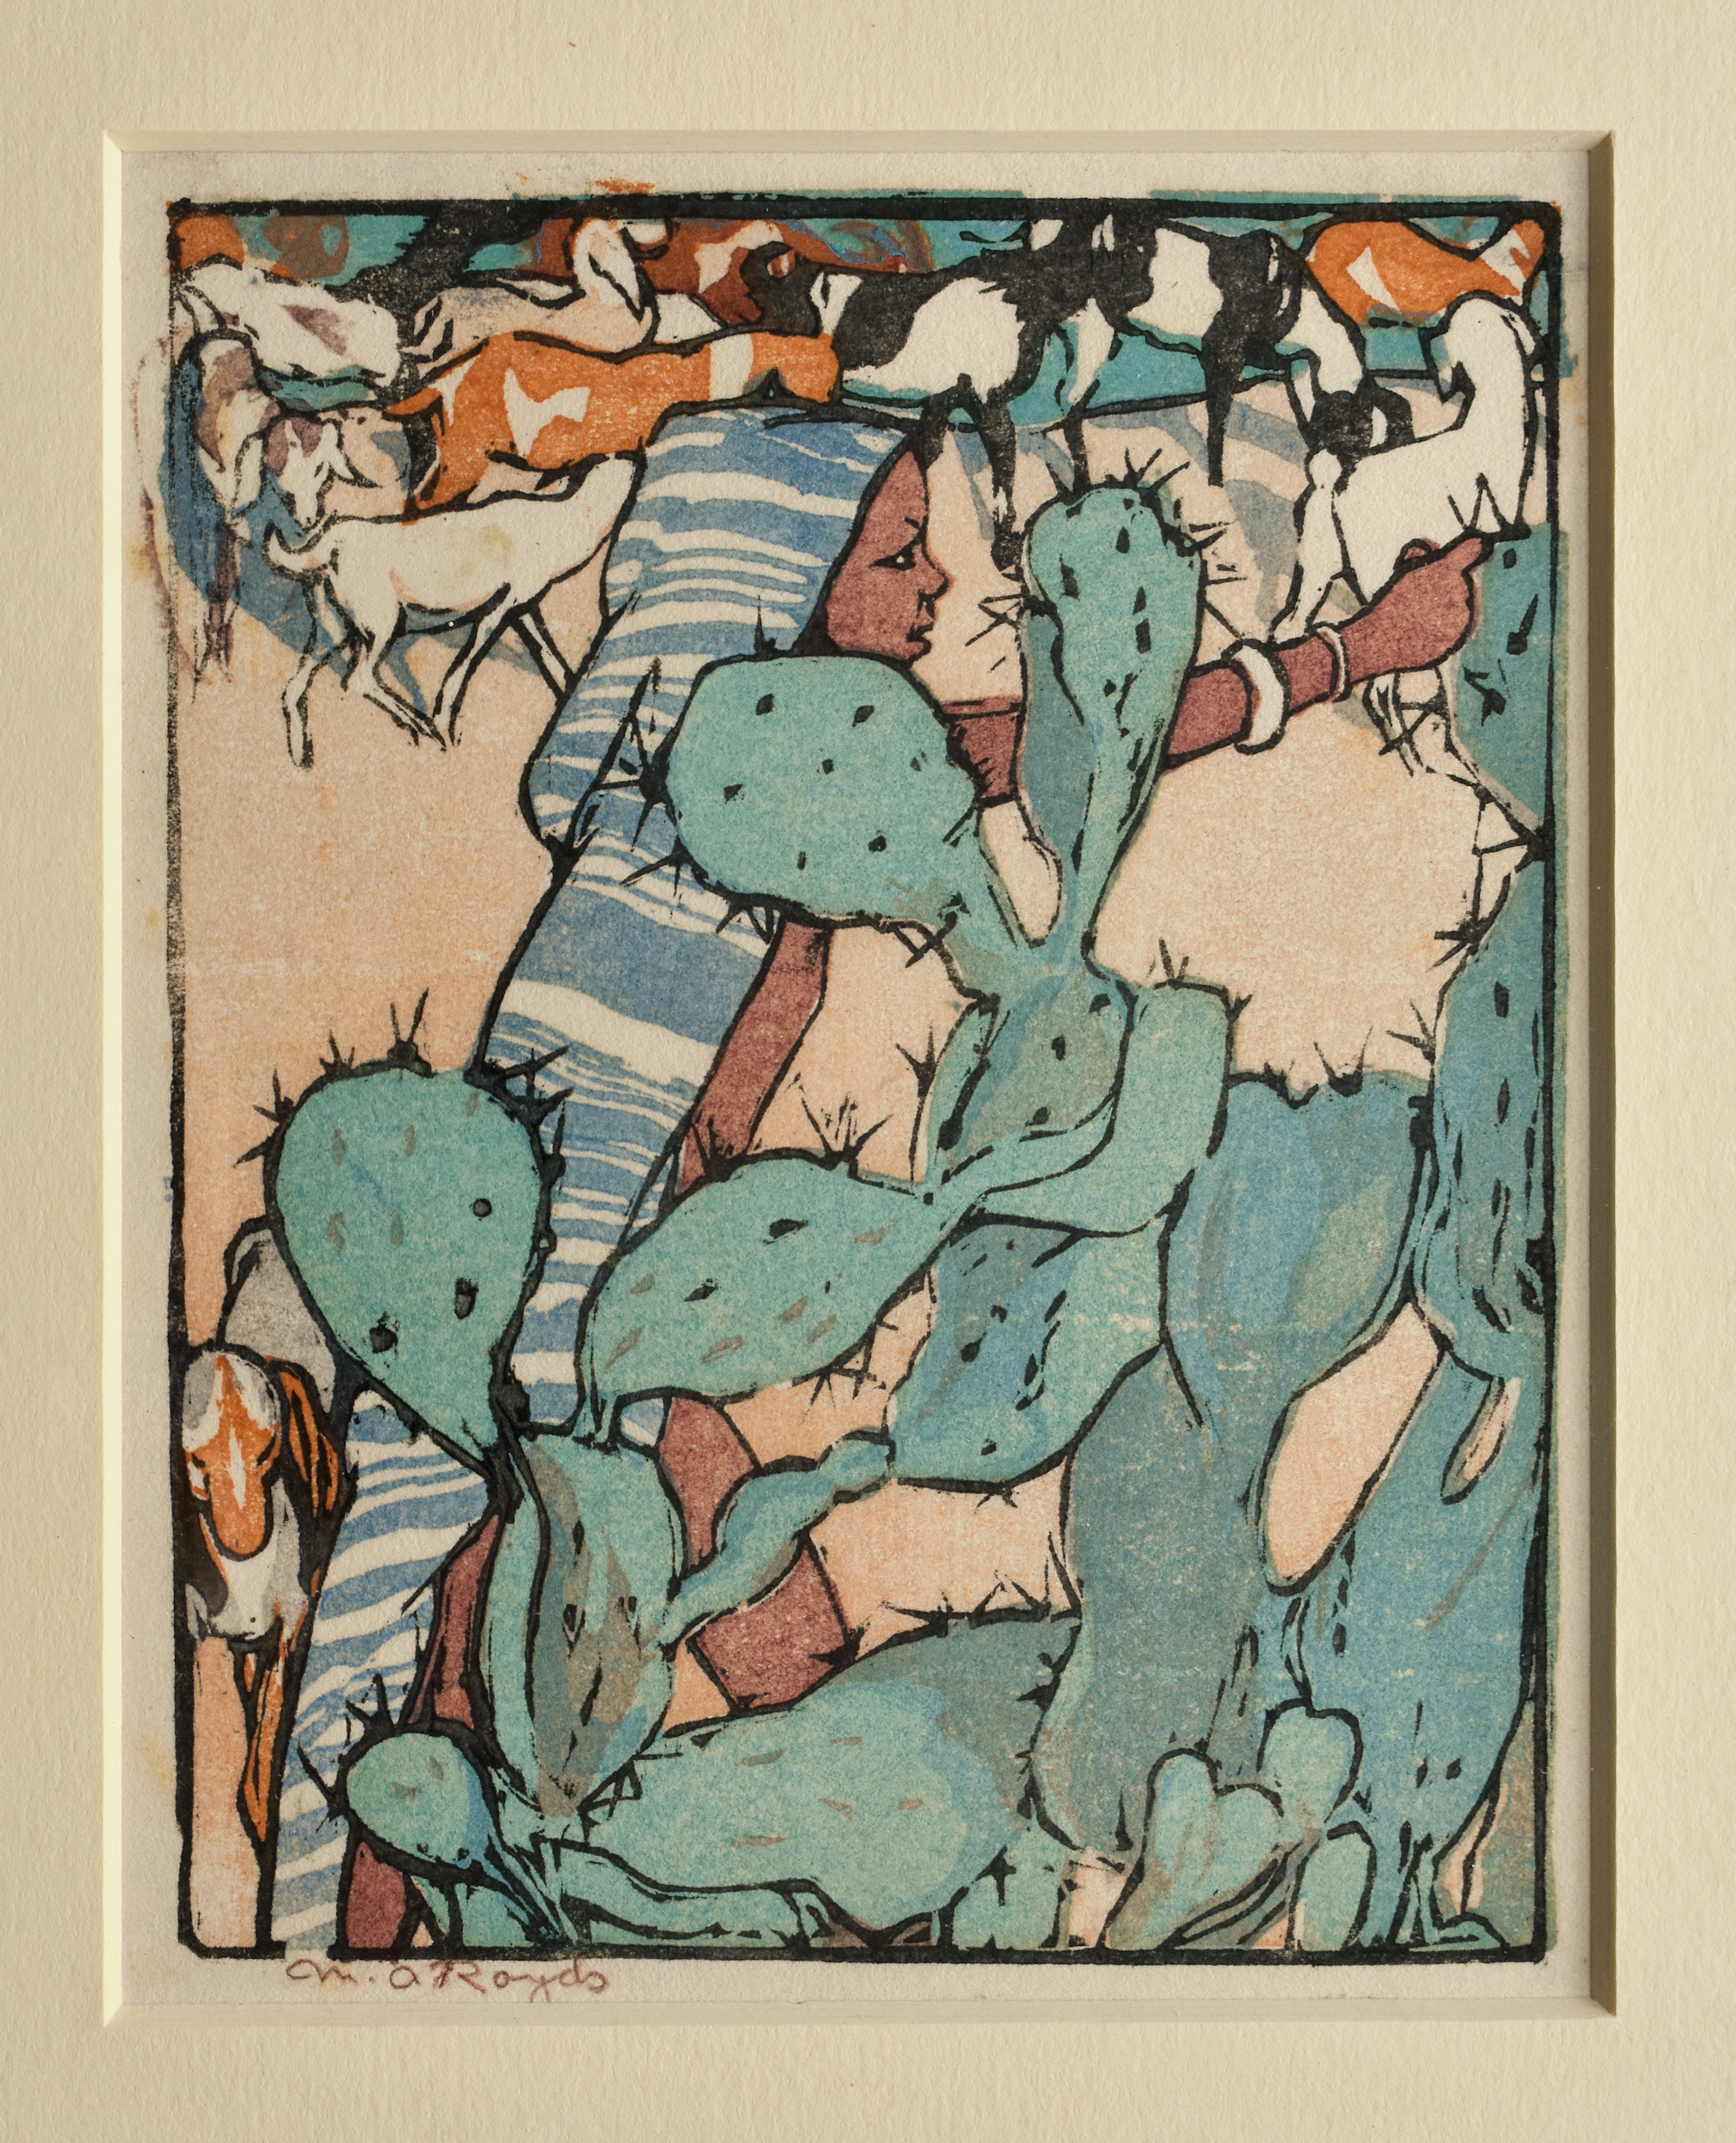 Mabel Alington Royds (British, 1874-1941), The Goatherd, woodcut printed in colours on wove paper, - Image 2 of 4